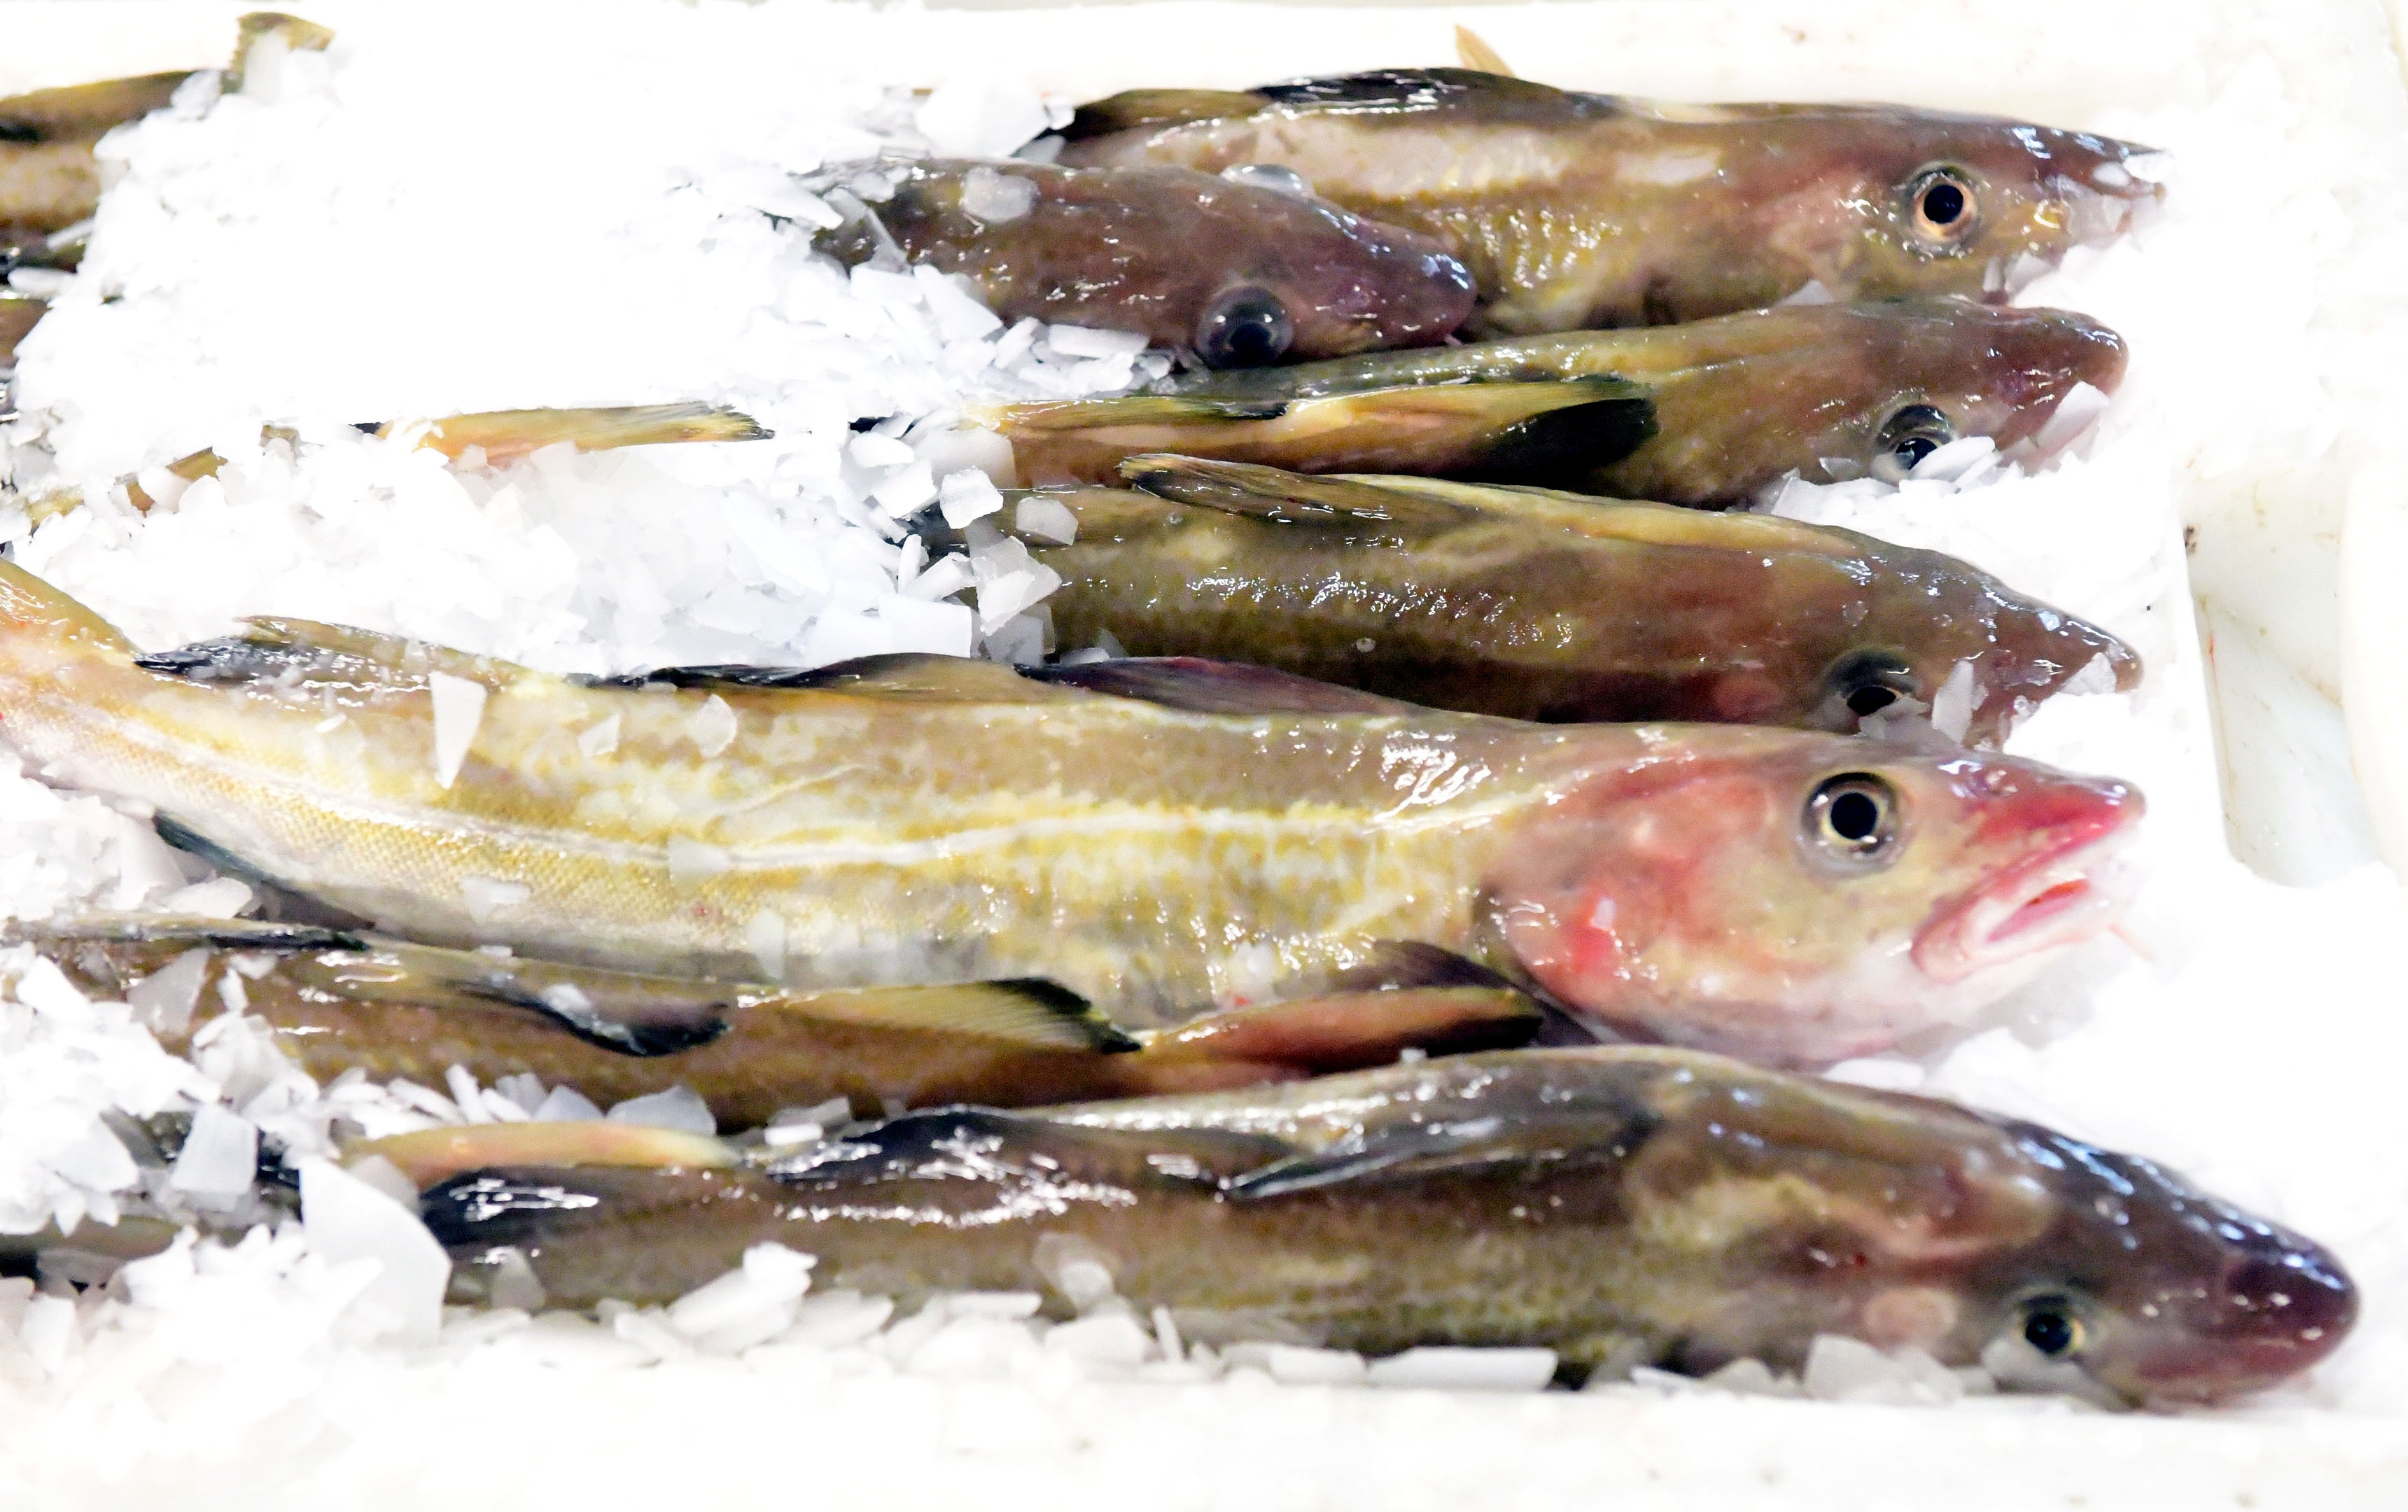 The new fish market in Peterhead opened yesterday.